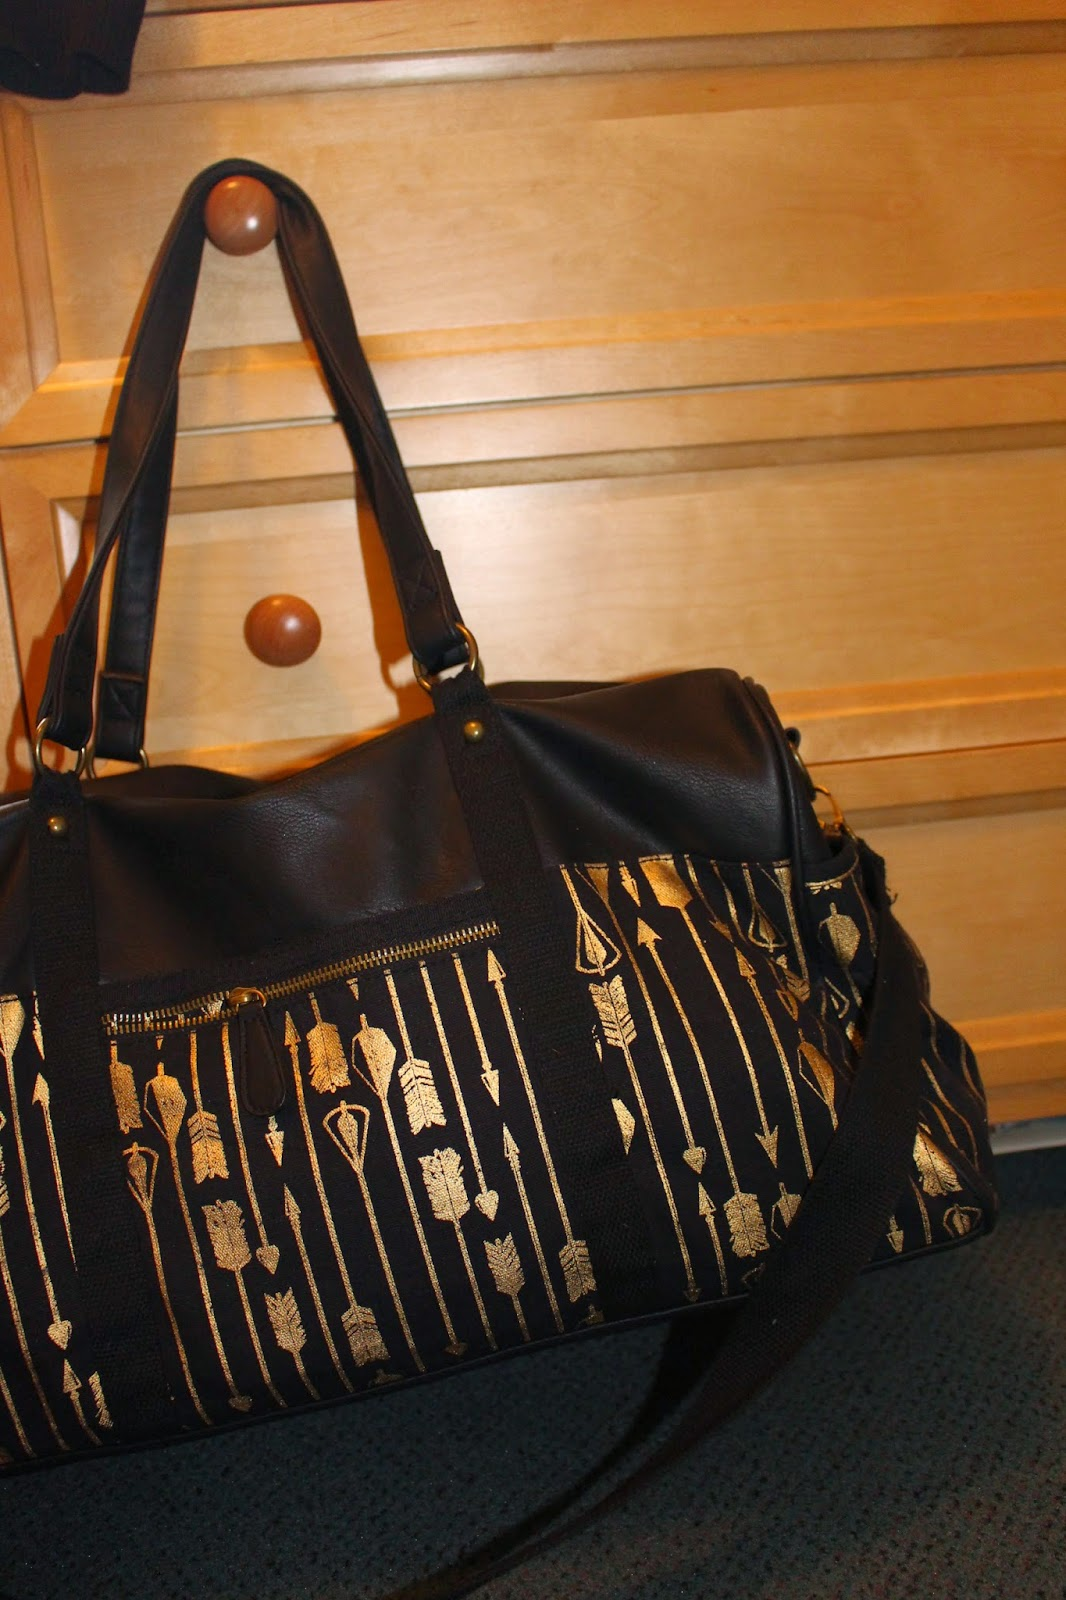 This Is My Non Designer Bag From Target I Actually Got For Birthday Because Old Was Falling Apart And Love It So Far